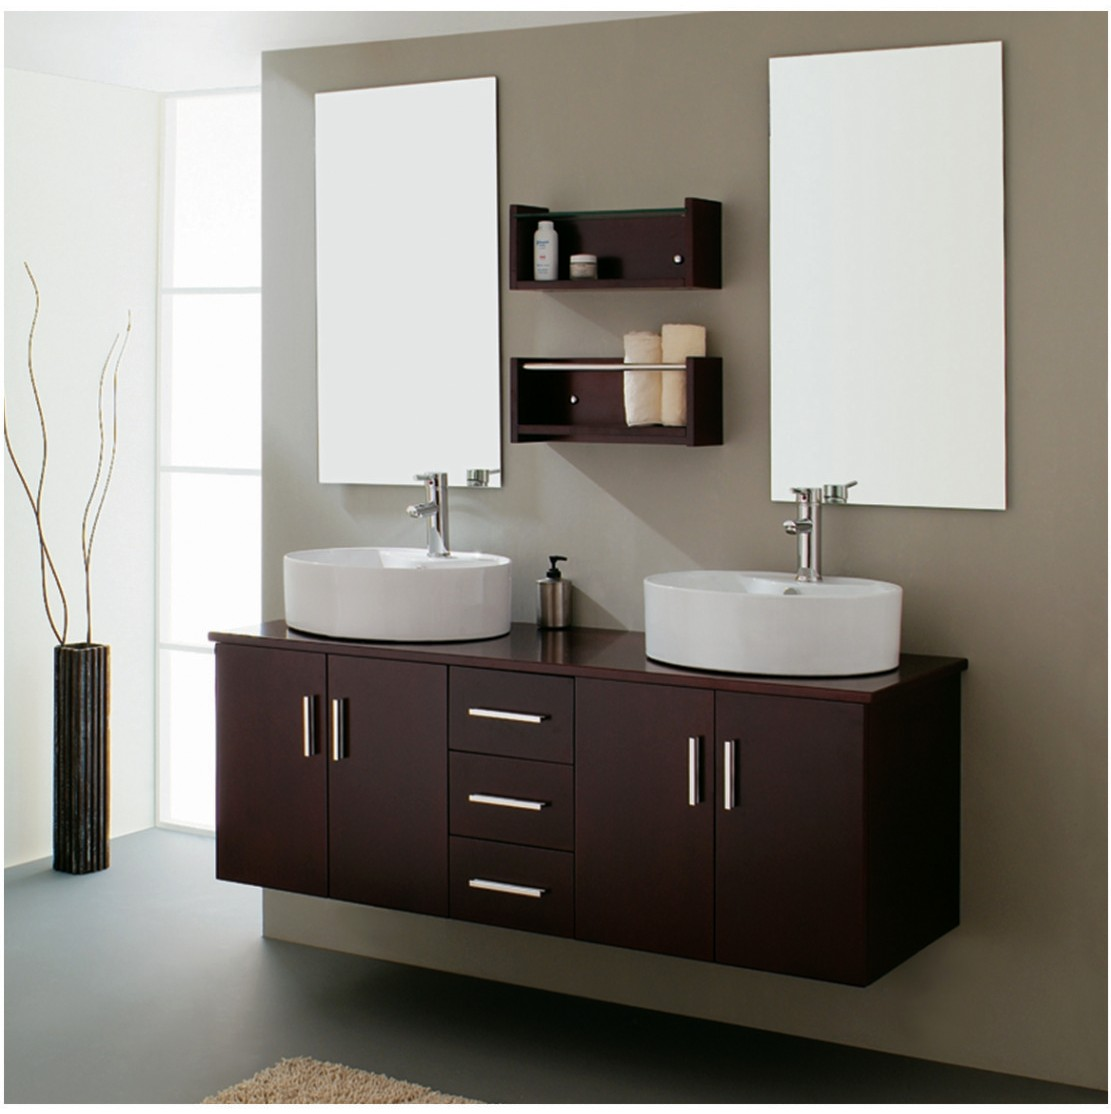 Modern bathroom double sink home decorating ideas for Bathroom furniture design ideas